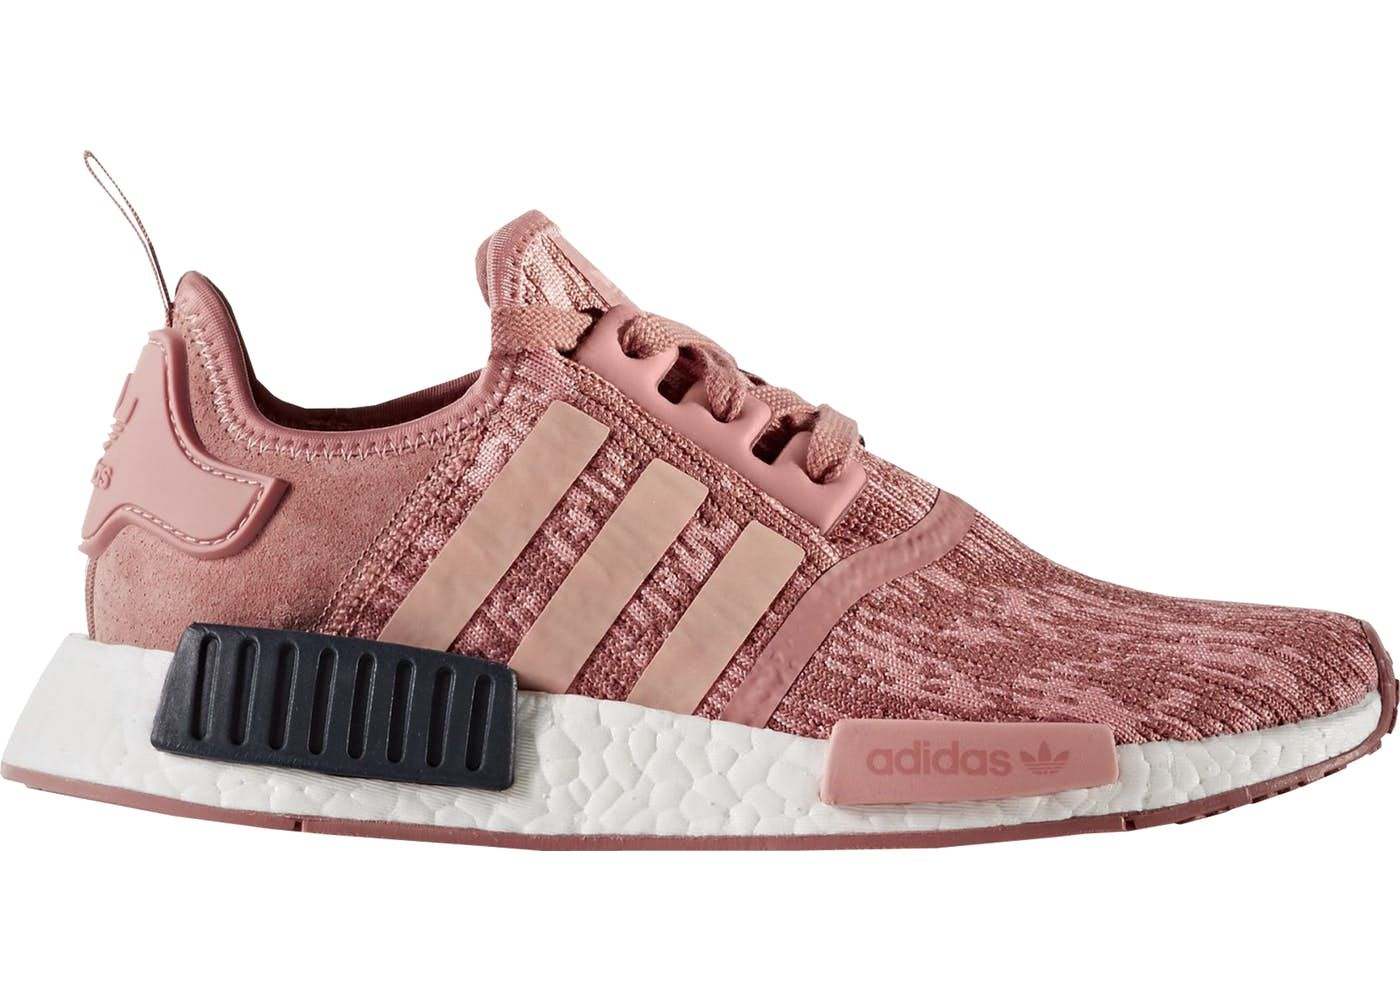 Adidas NMD R1 Raw Pink White Trainer Pink with bright and